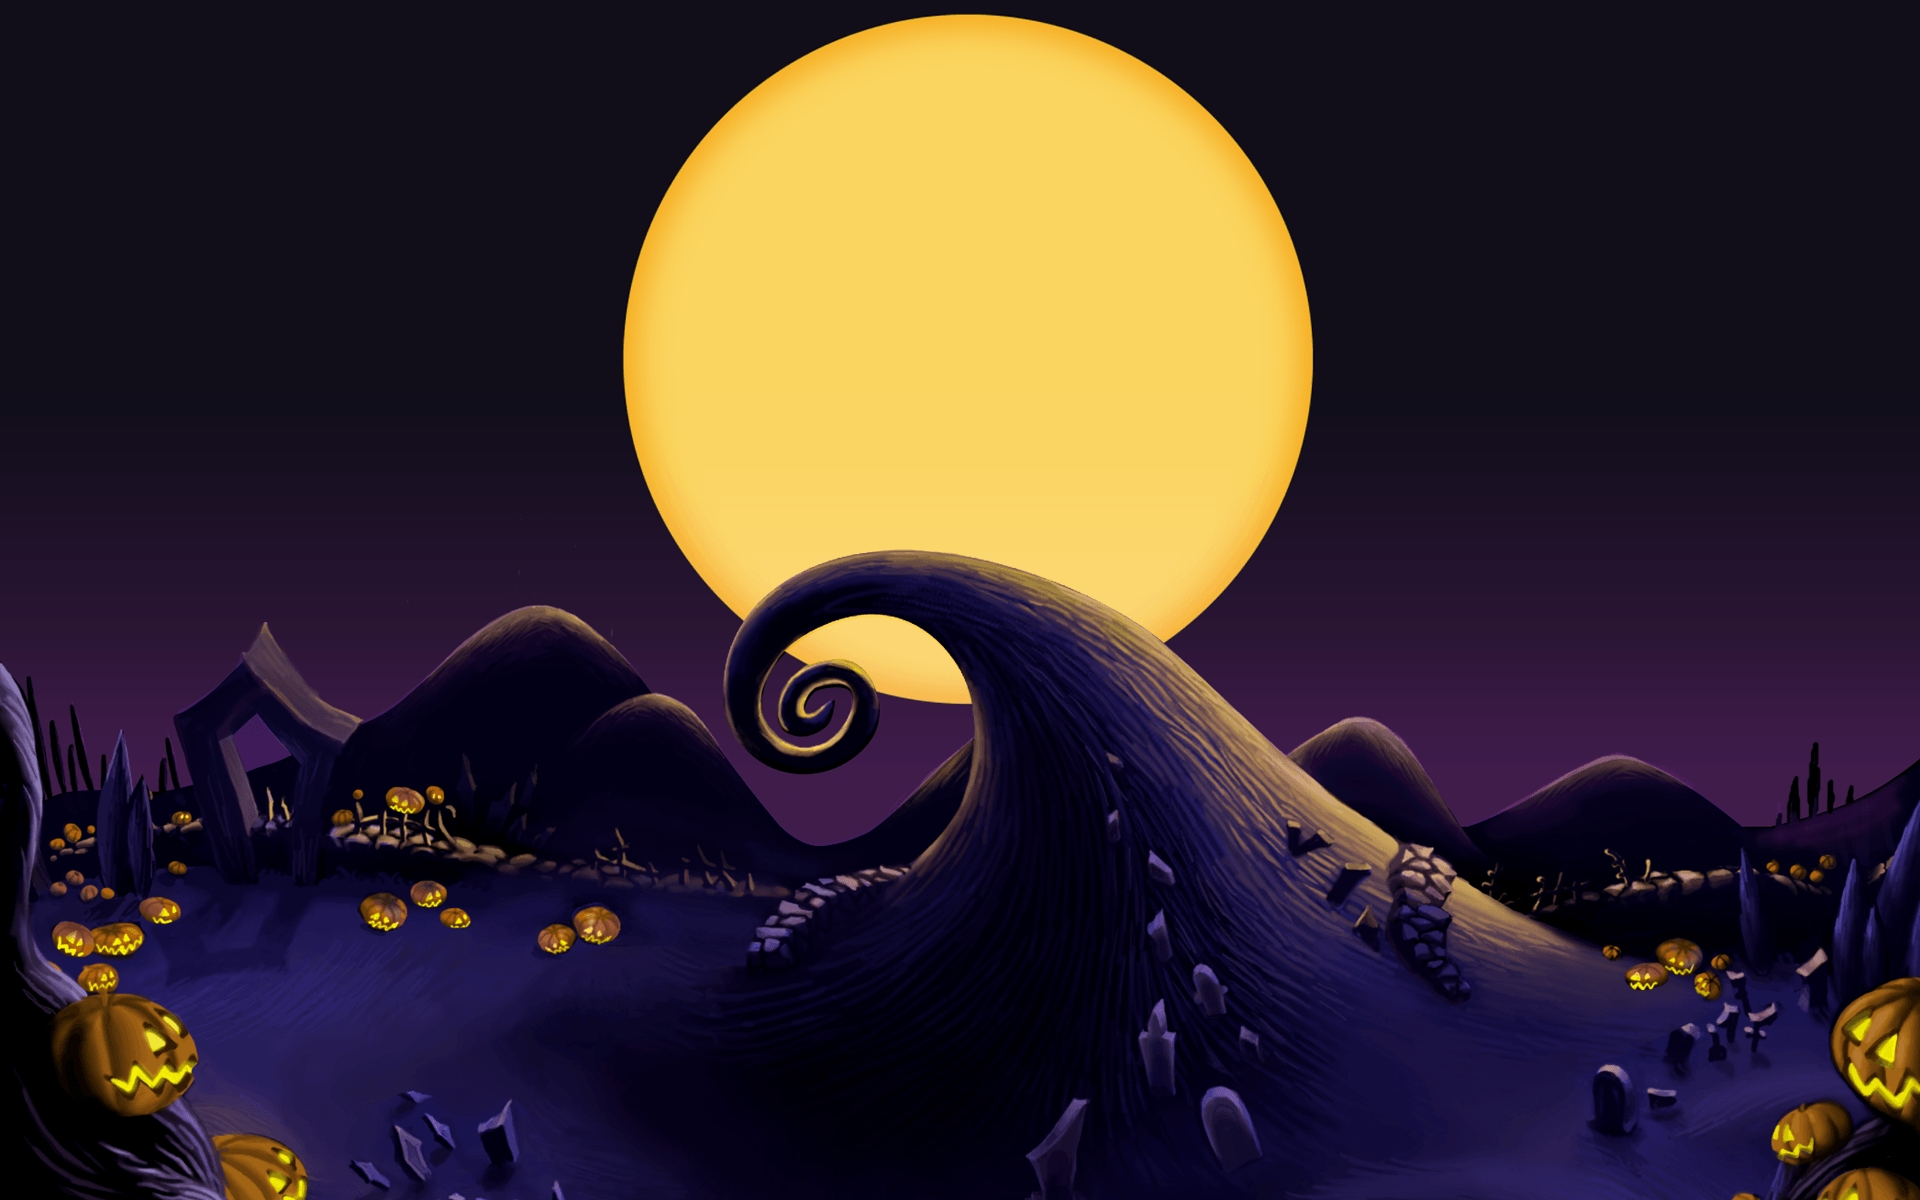 10 New Nightmare Before Christmas Screensavers FULL HD 1080p For PC Desktop